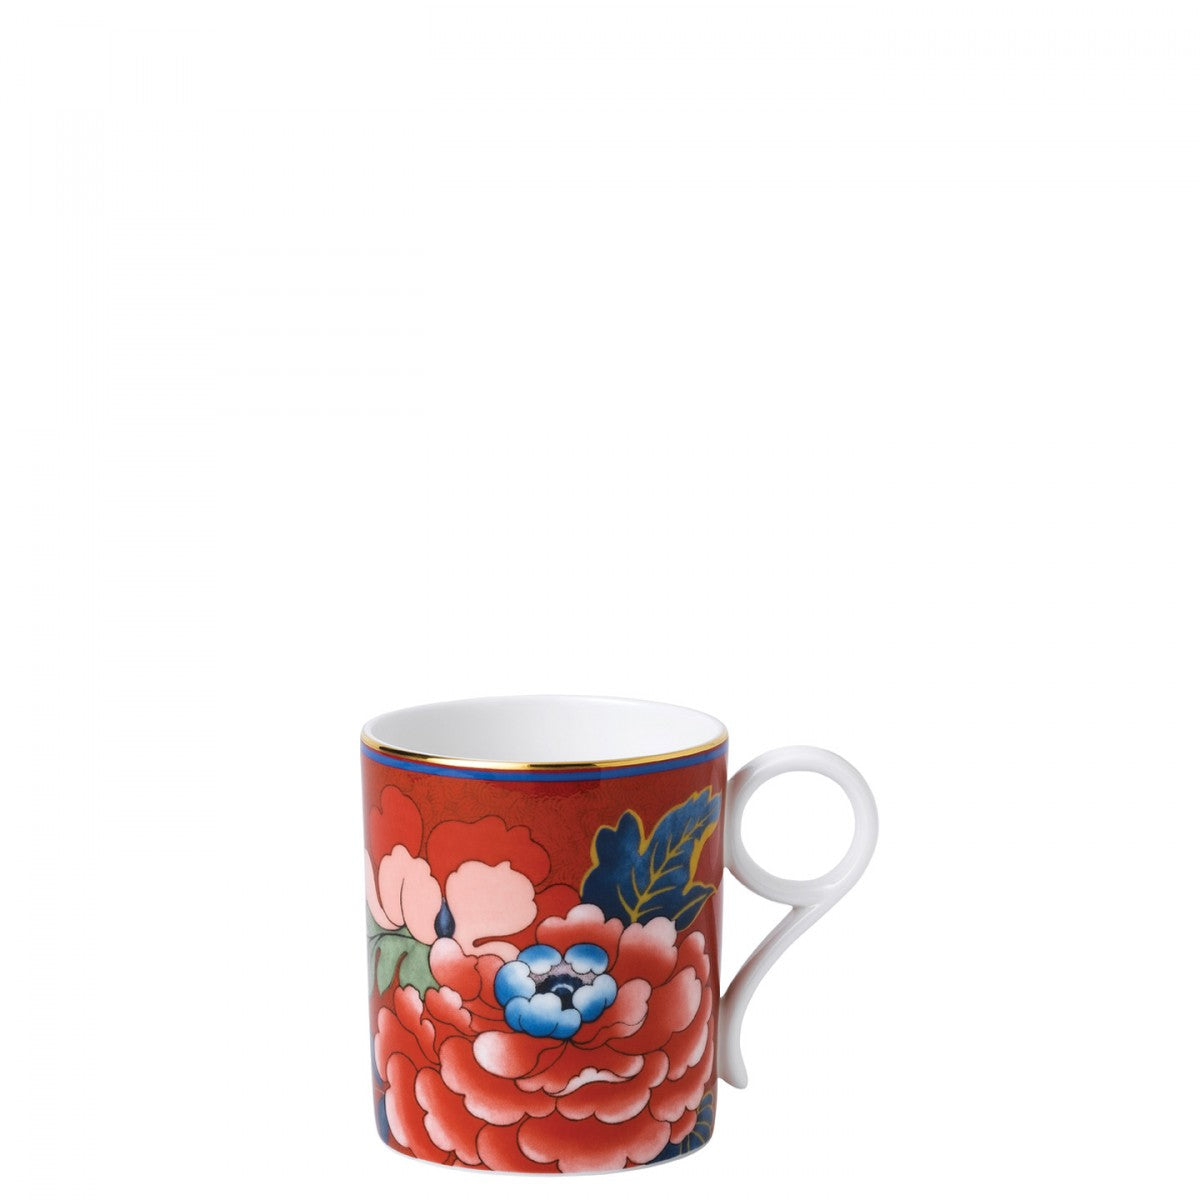 Paeonia Blush Mug Red